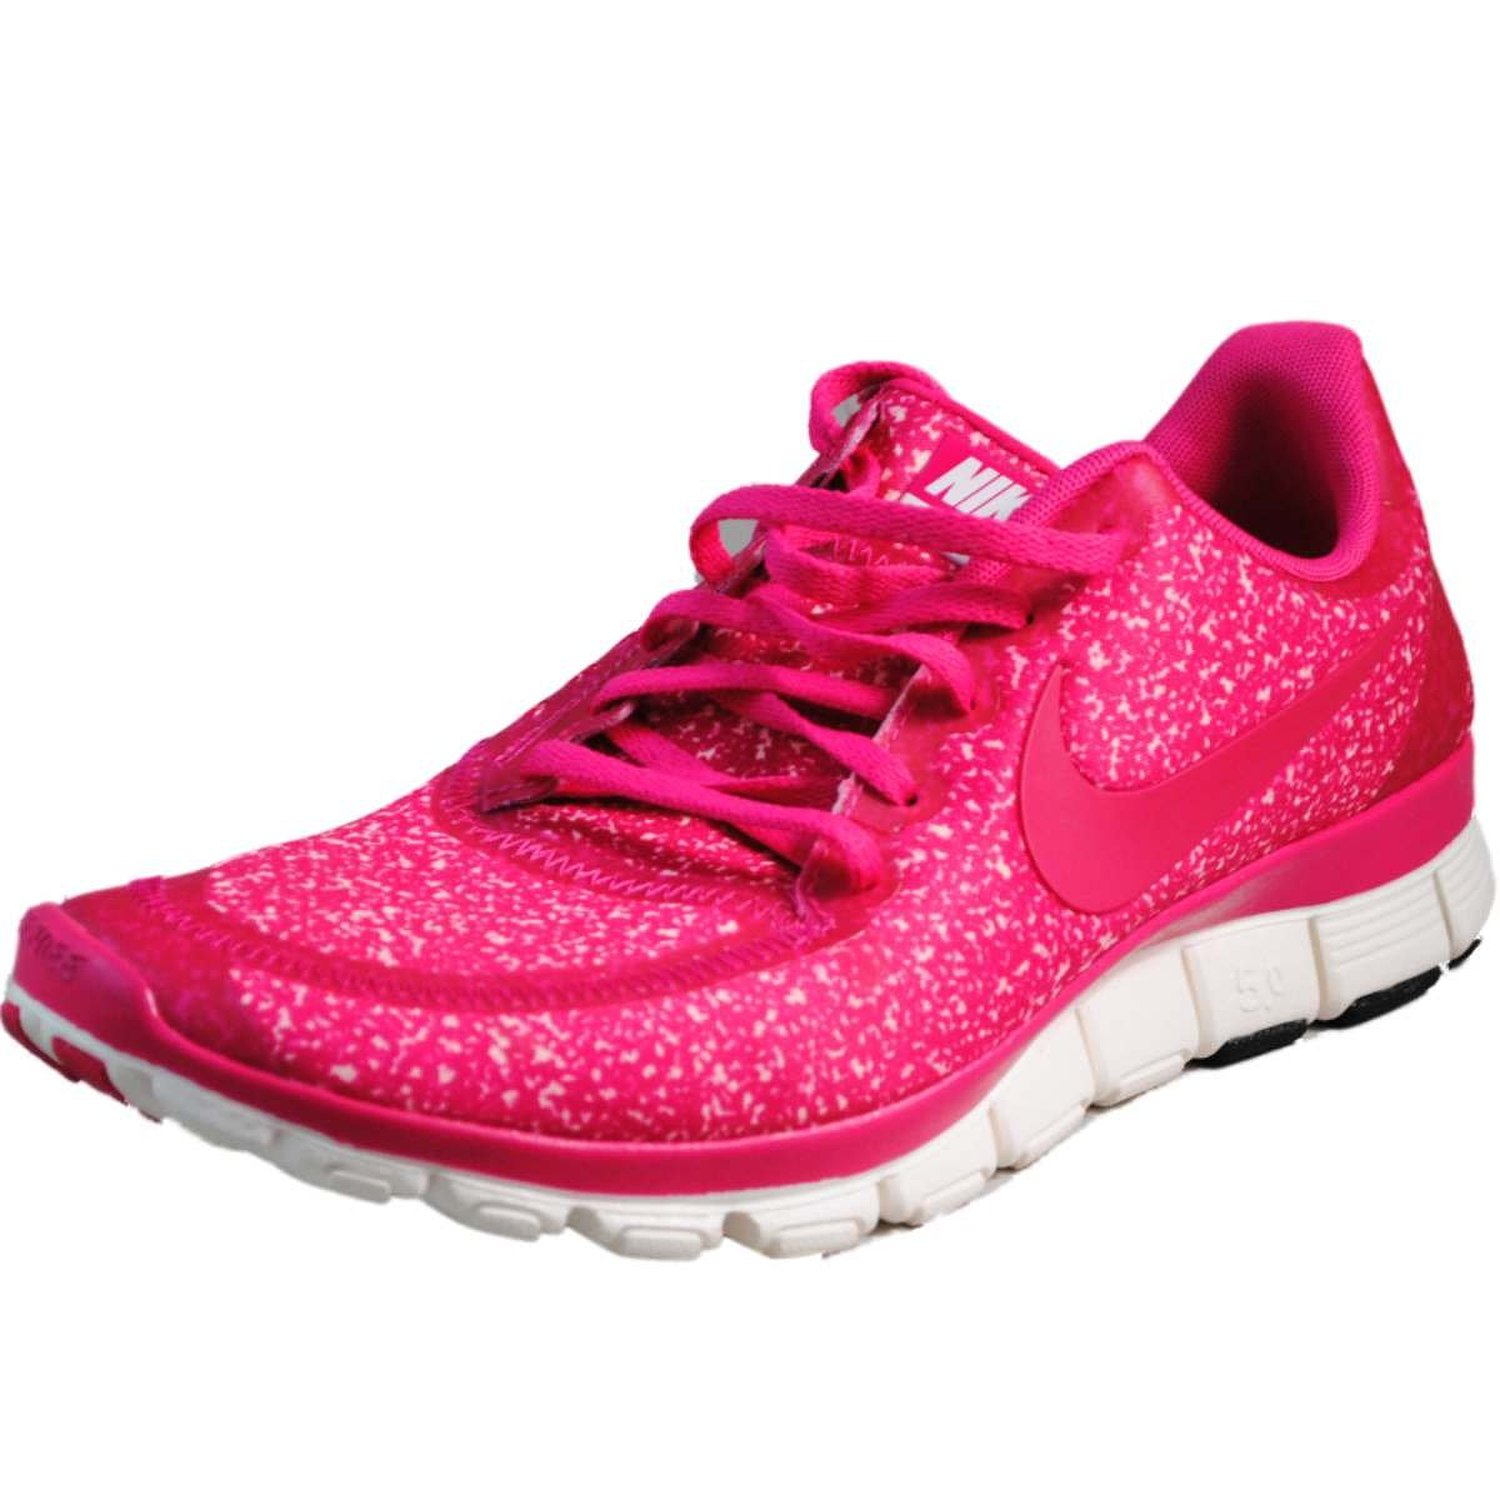 Amazon.com: Nike Free 5.0 V4 Womens running shoes Model 511281 101: Shoes